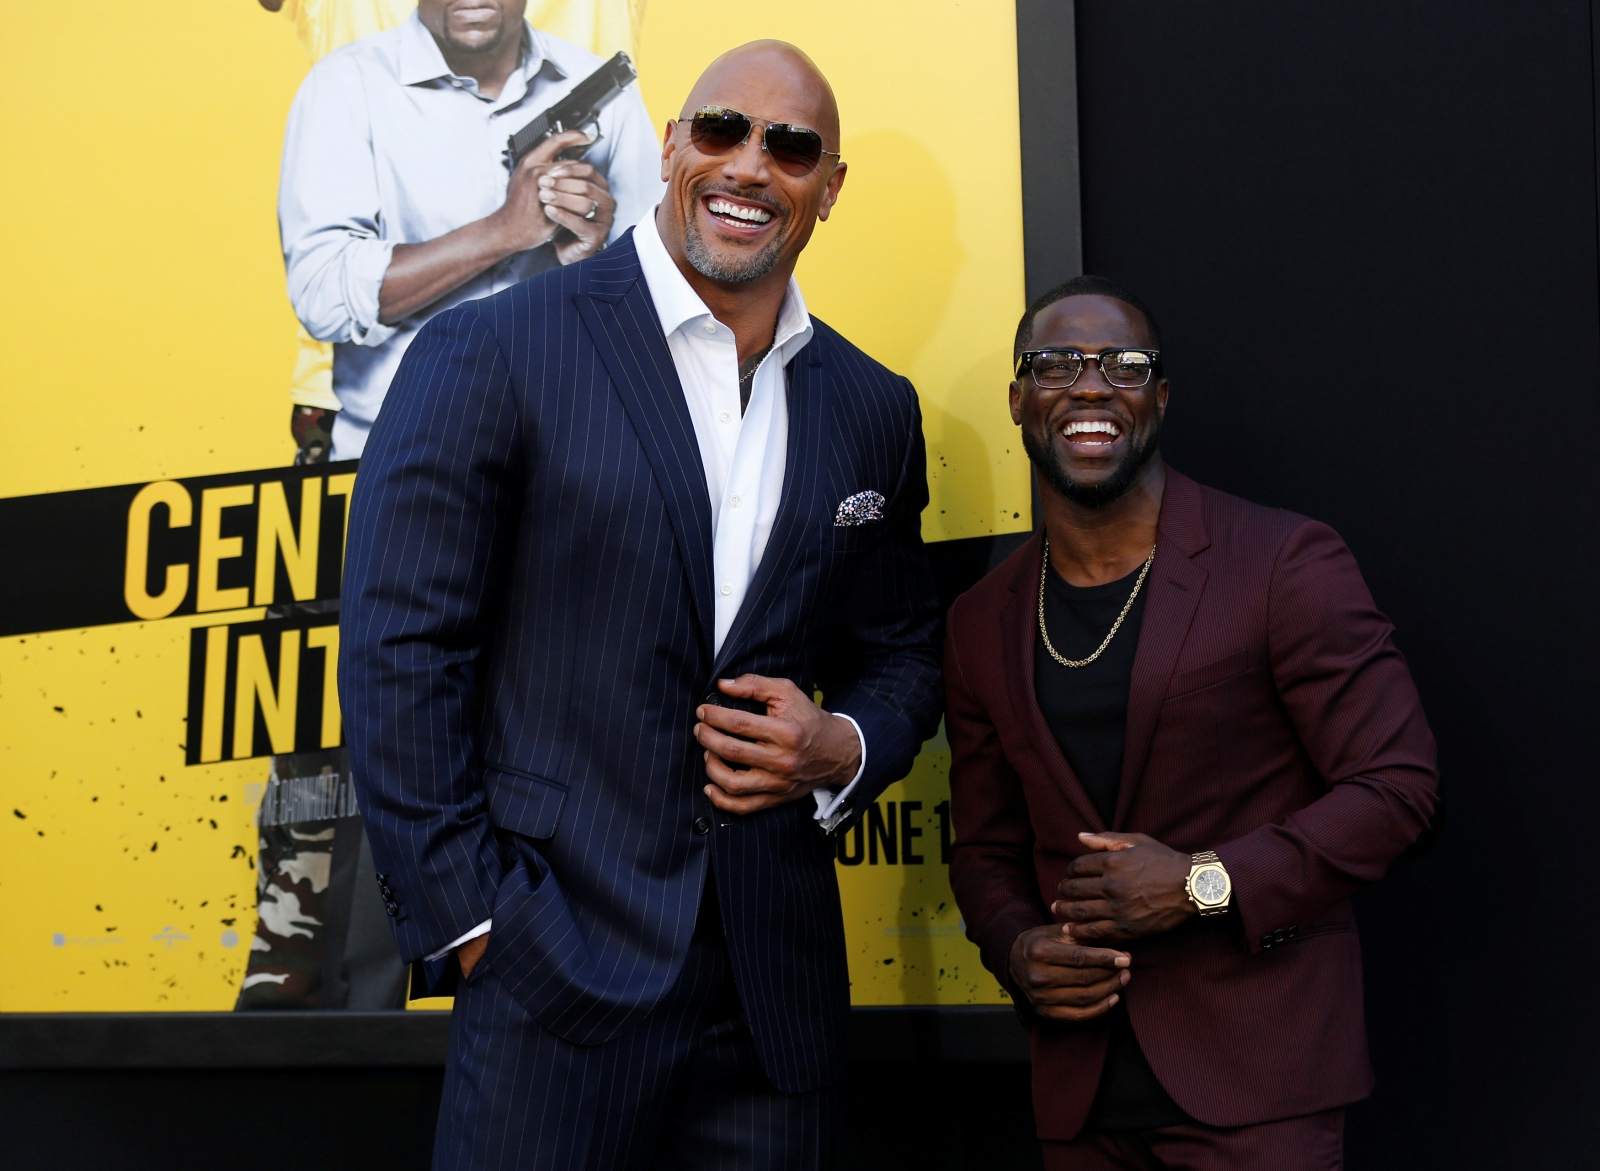 Kevin Hart says he is a 'much better' actor than Dwayne Johnson in Jumanji sequel